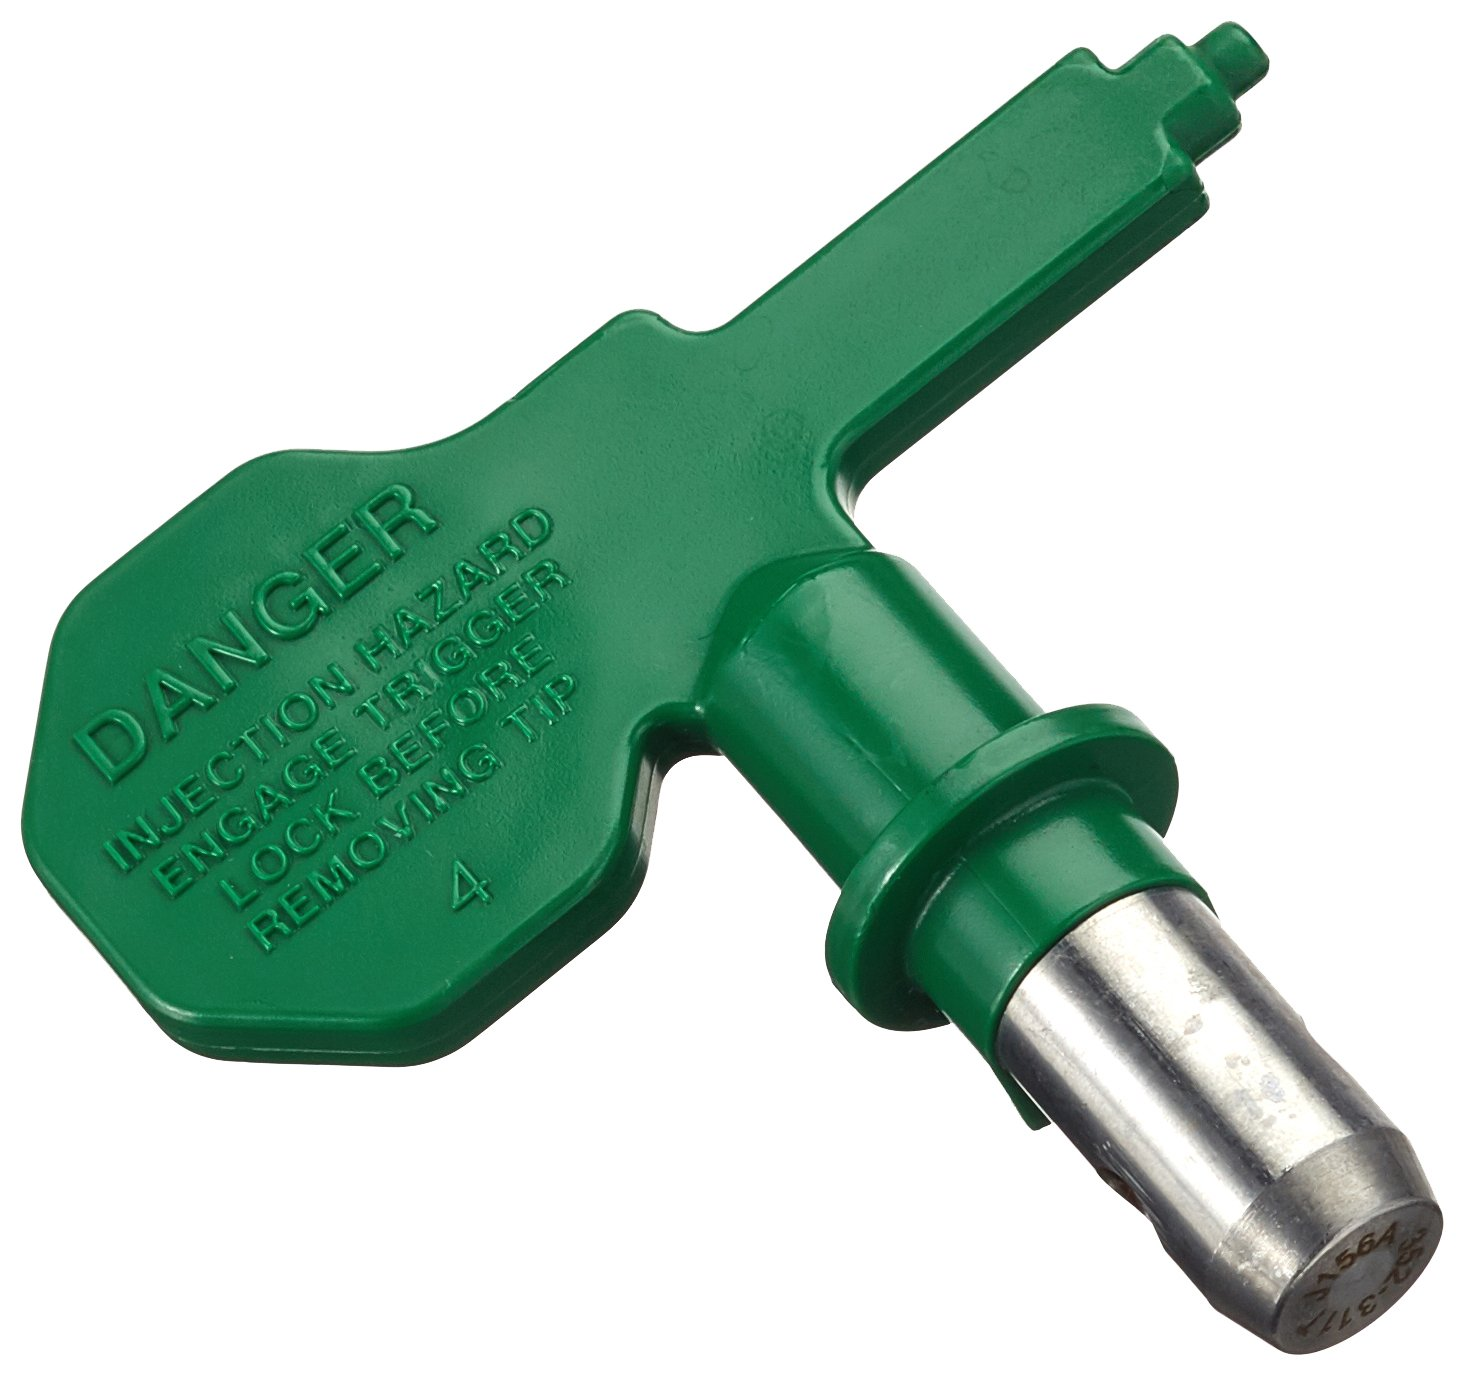 Wagner 517311 Control Pro Airless Sprayer HEA Tip 311 for Wood & Metal Paint, 55% Less Spray Mist, Green